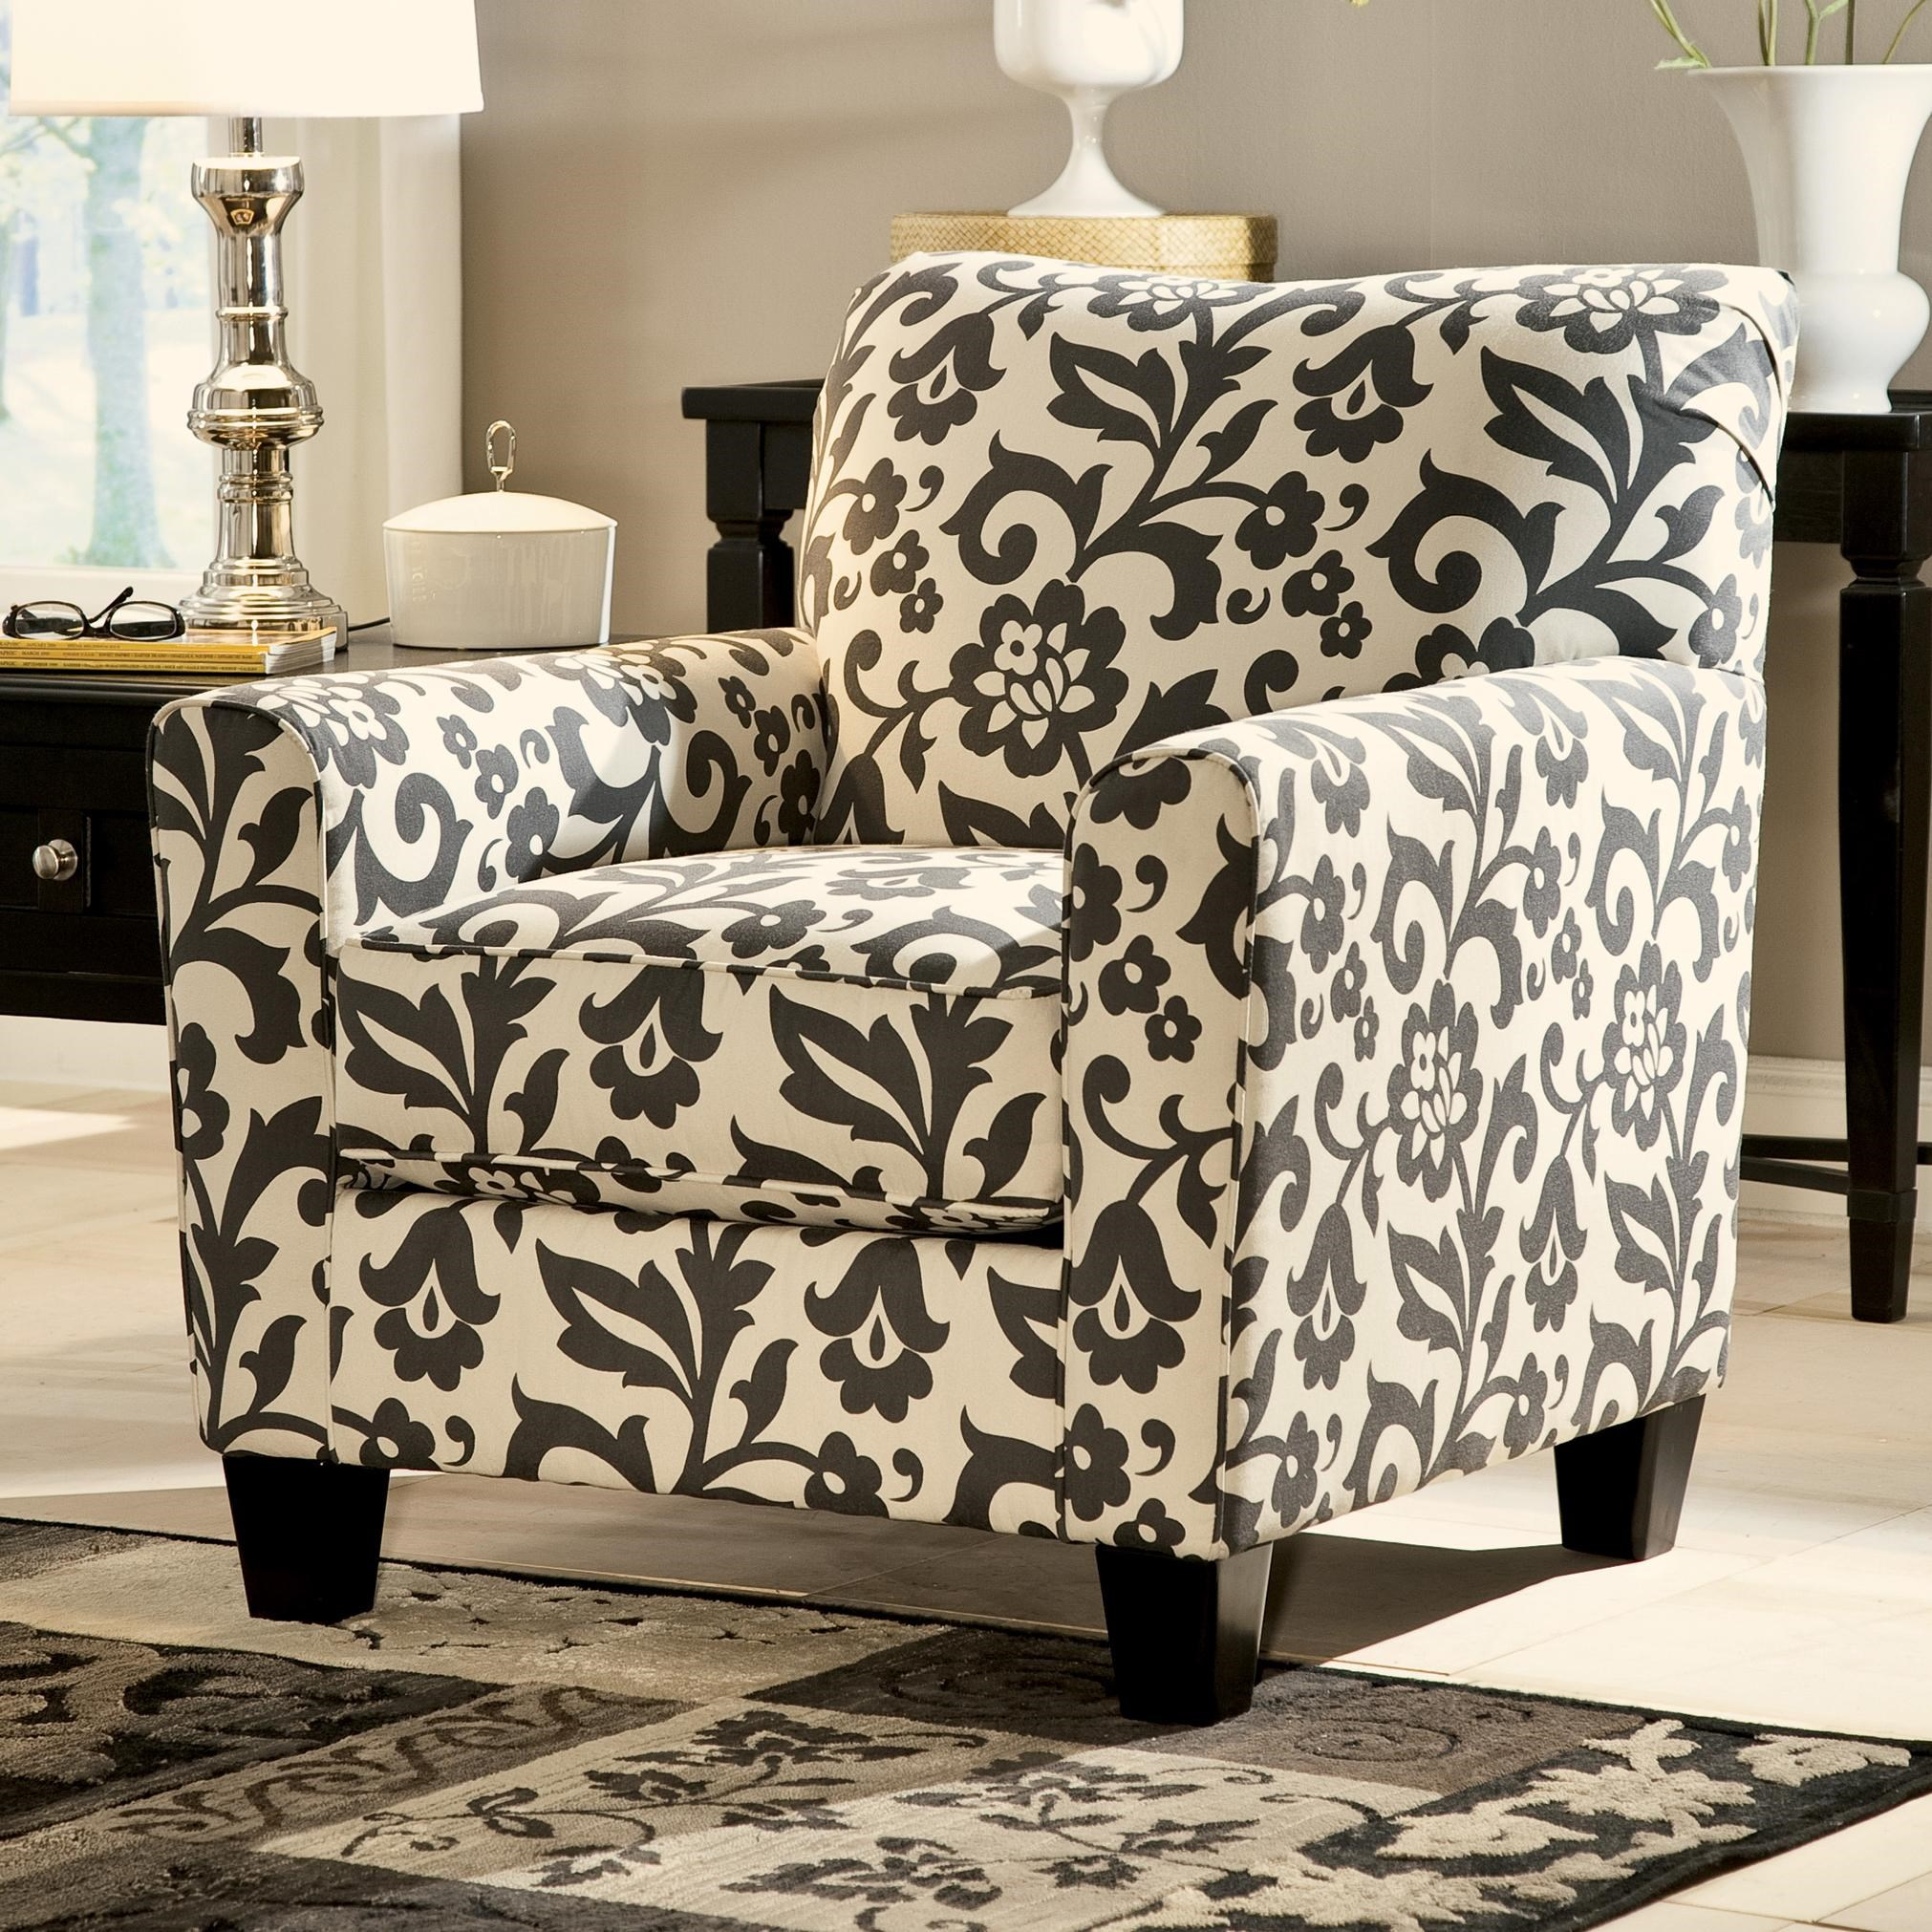 Ordinaire Signature Design By Ashley Levon   Charcoal Accent Chair In Floral Print